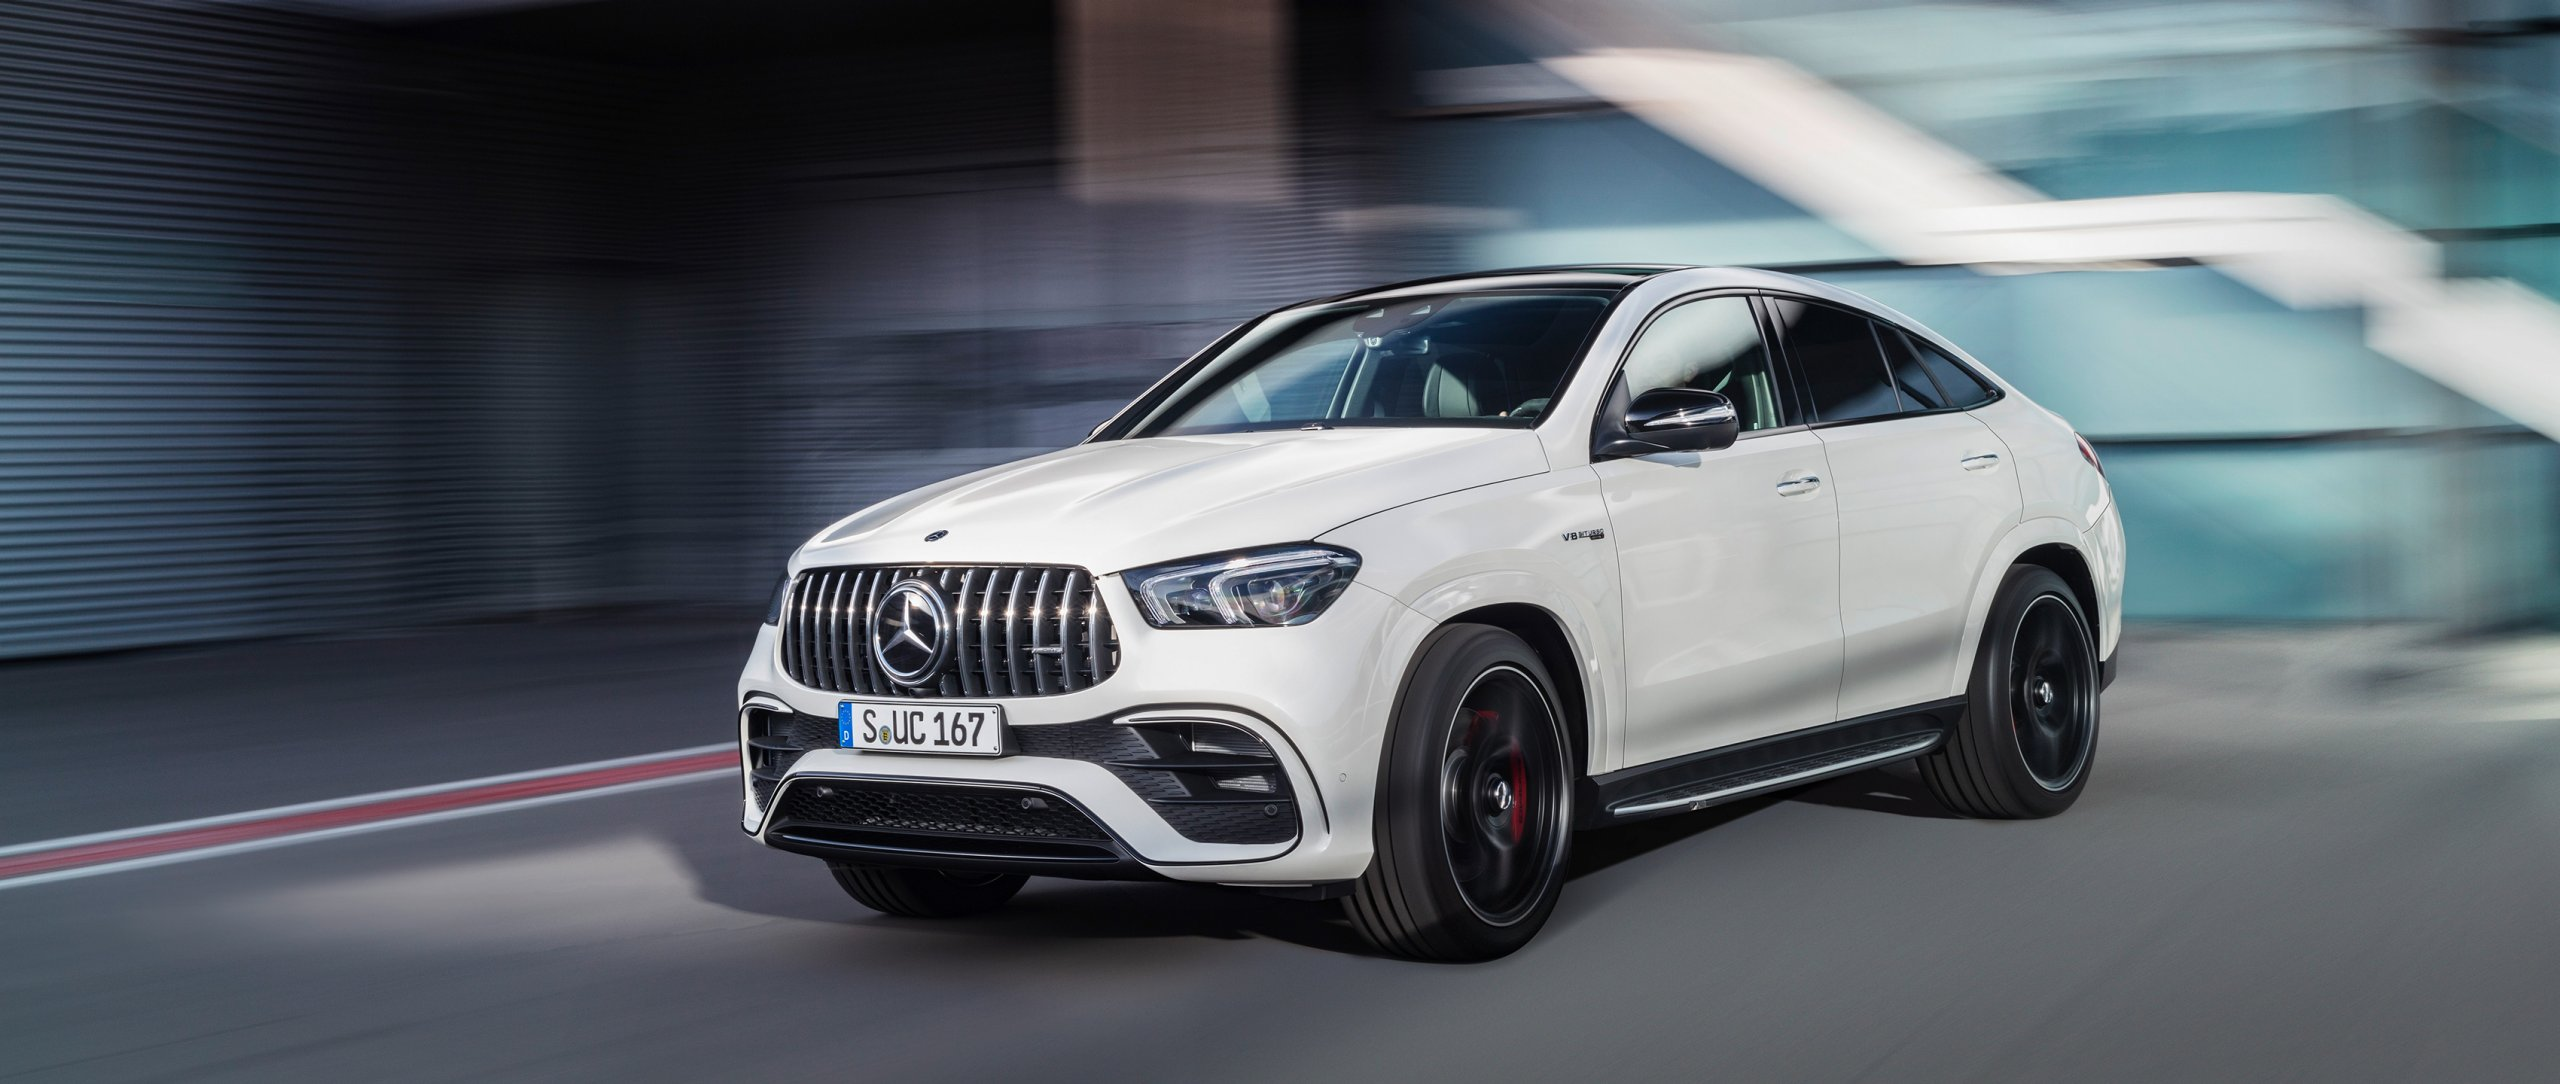 The new Mercedes-AMG GLE 63 S 4MATIC+ Coupé drives on a road. A blurred building can be seen in the background.